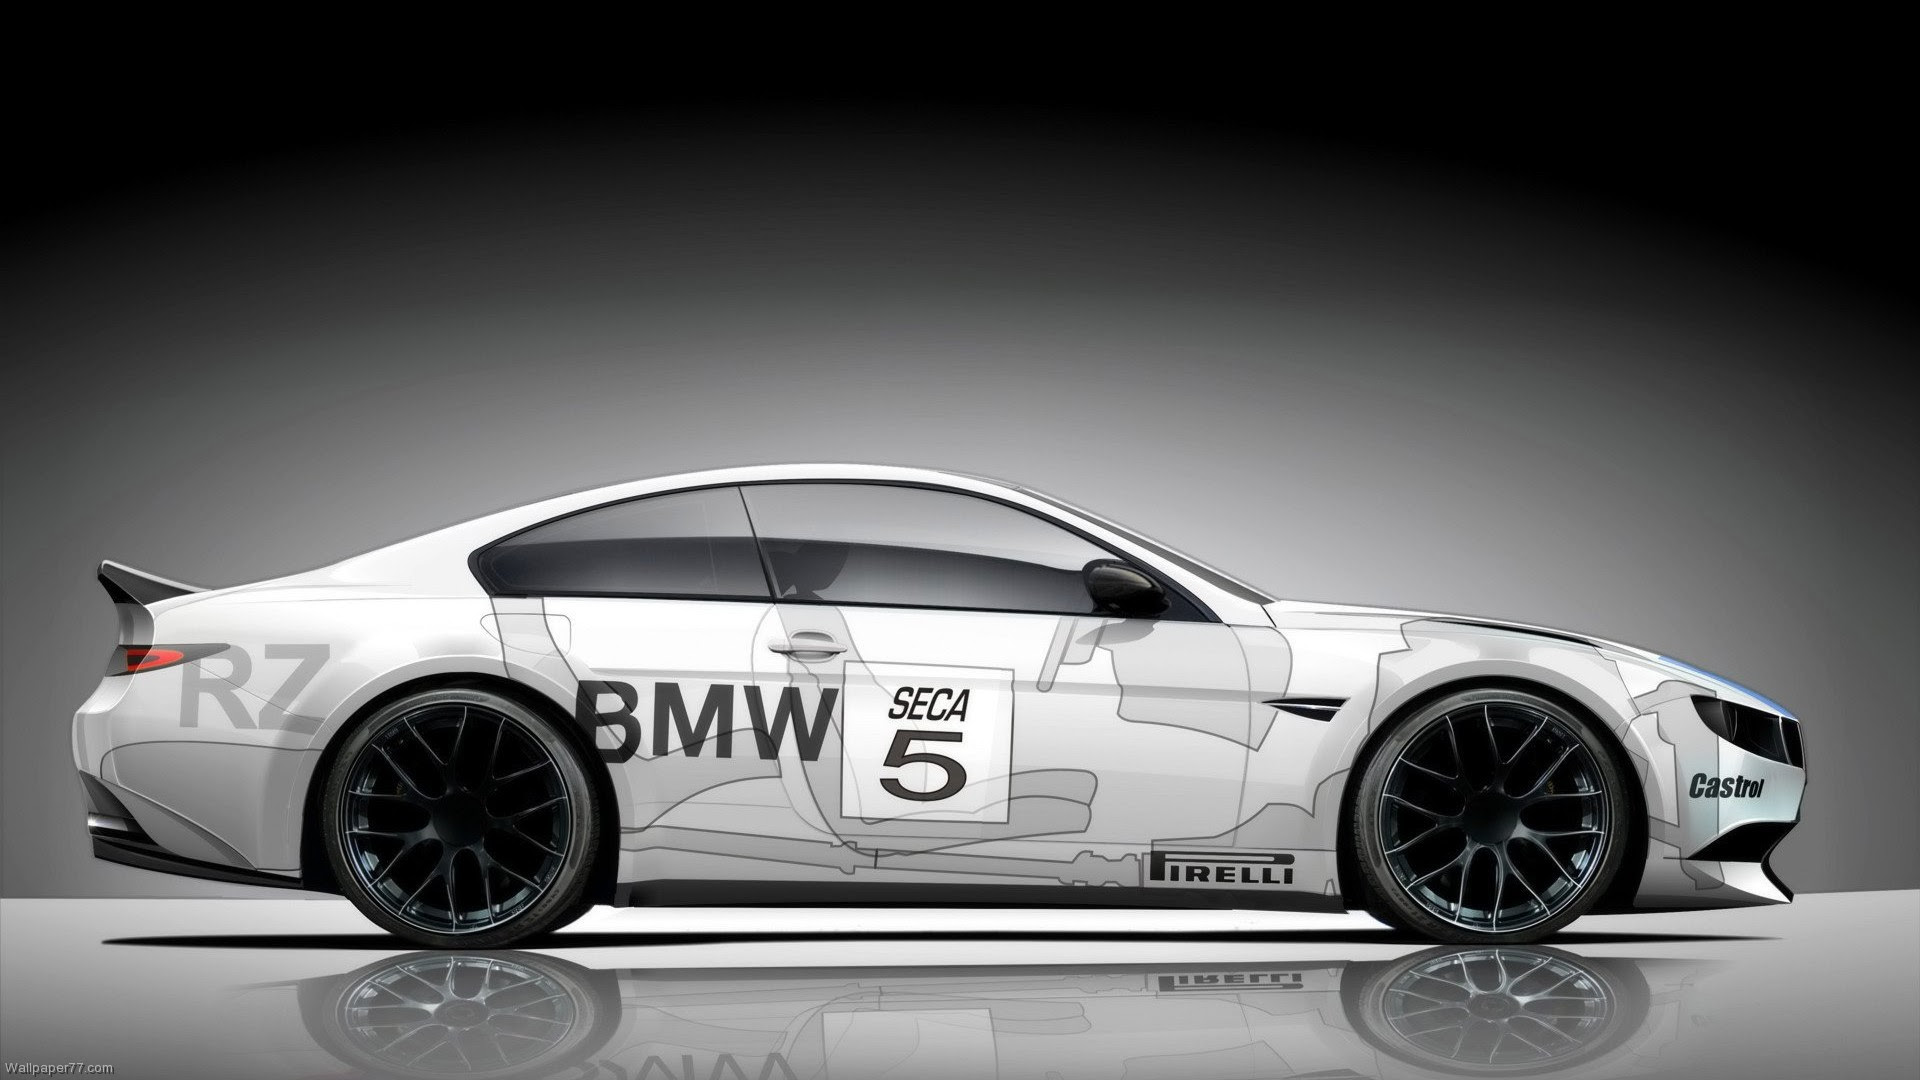 Best BMW Wallpapers For Desktop \u0026 Tablets in HD For Download